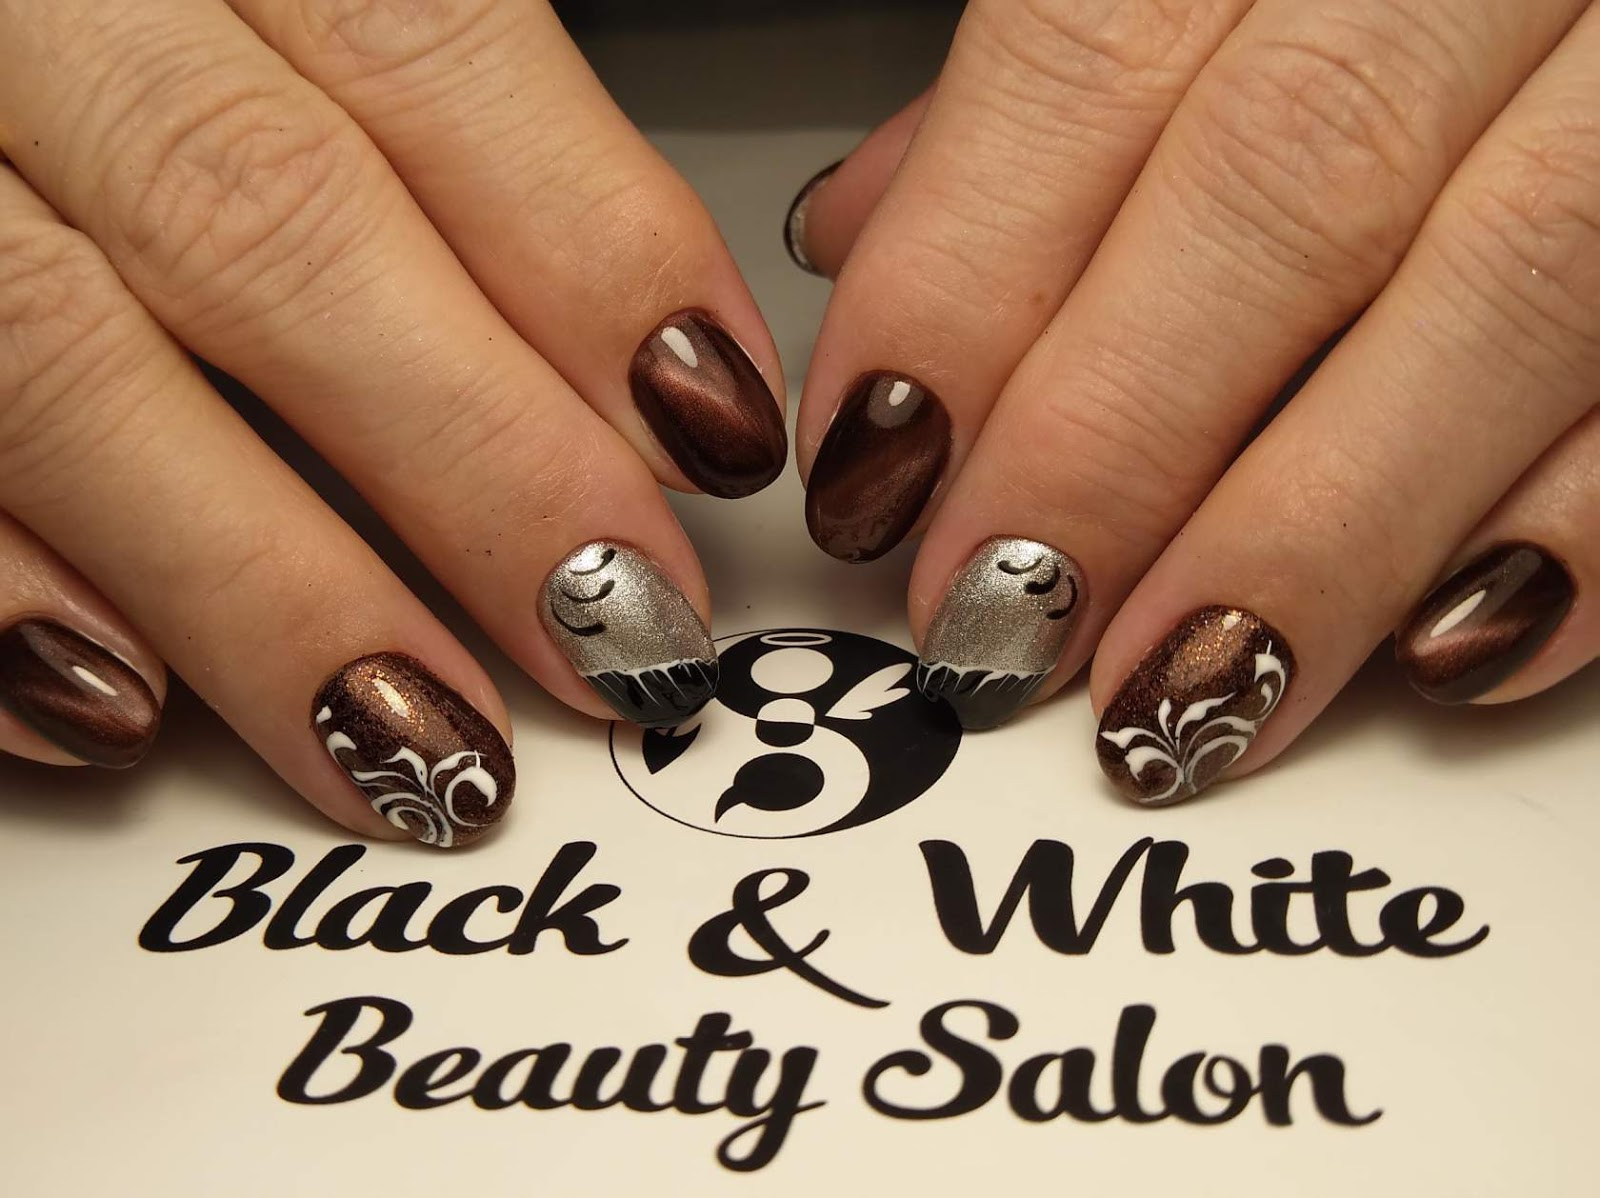 Black & White Nails Art Disign: Johnny Cash Nine Inch Nails Cover